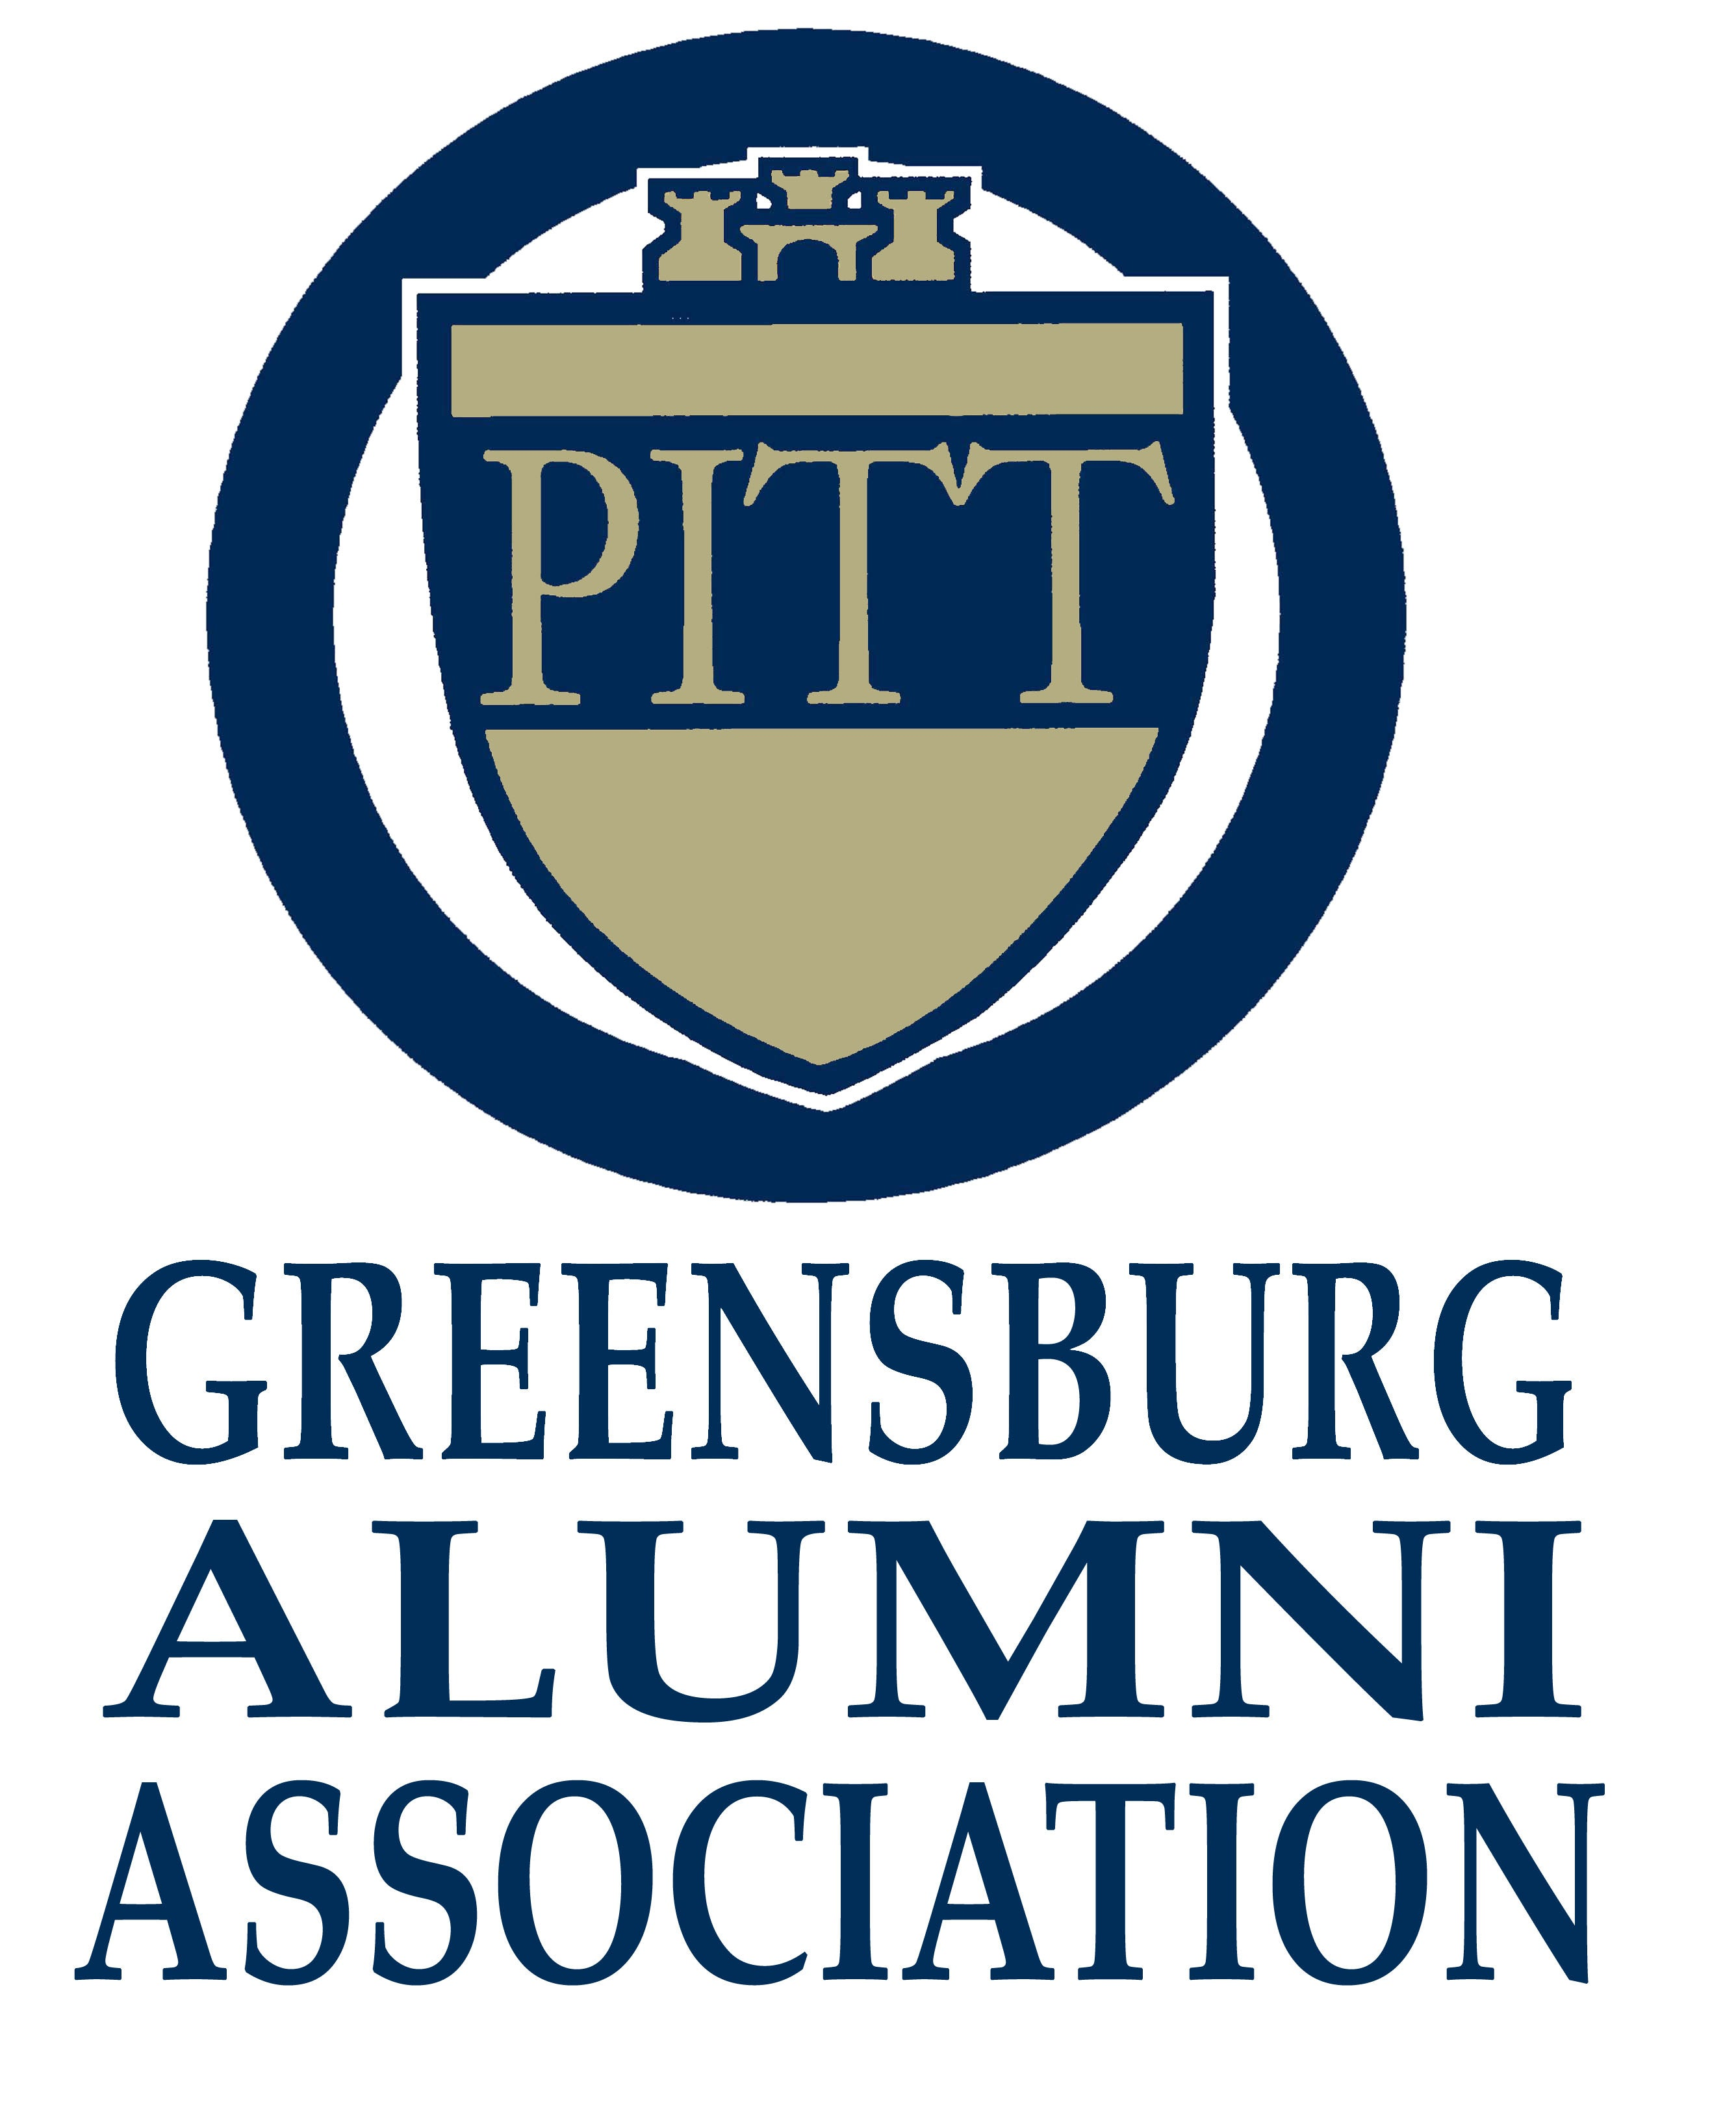 Pitt-Greensburg Alumni Association (PGAA) logo